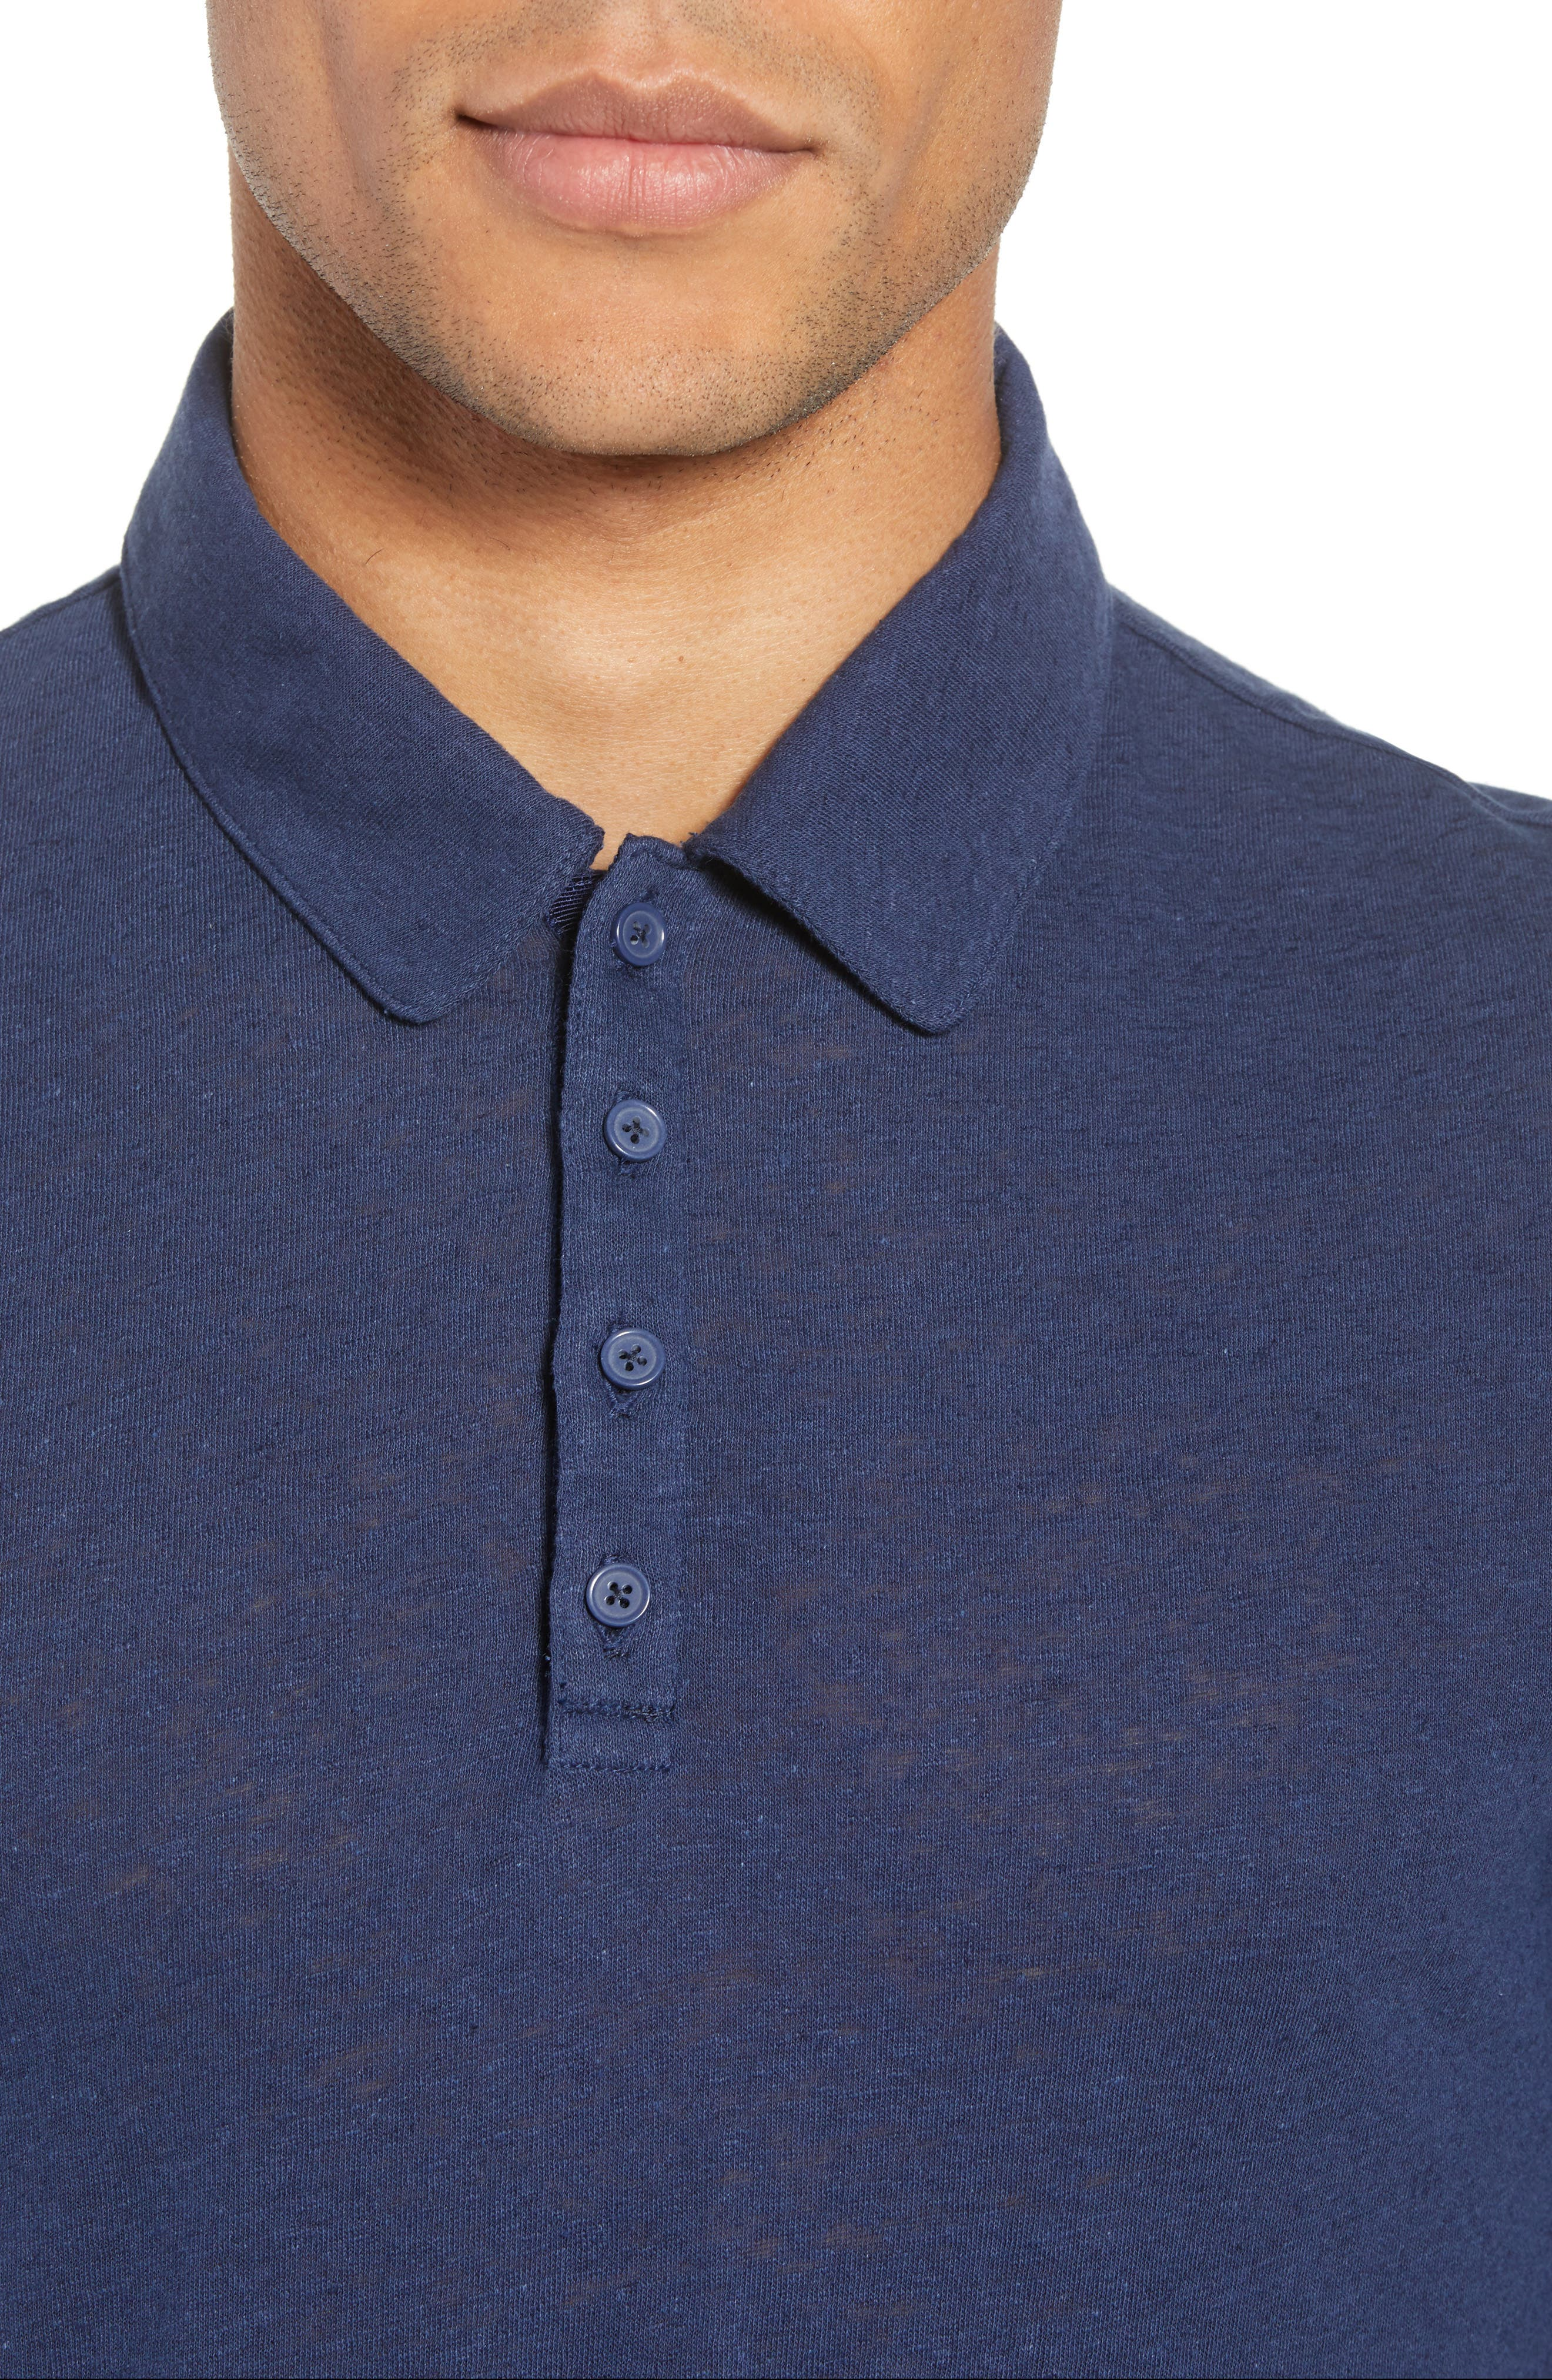 Slim Fit Polo,                             Alternate thumbnail 4, color,                             300